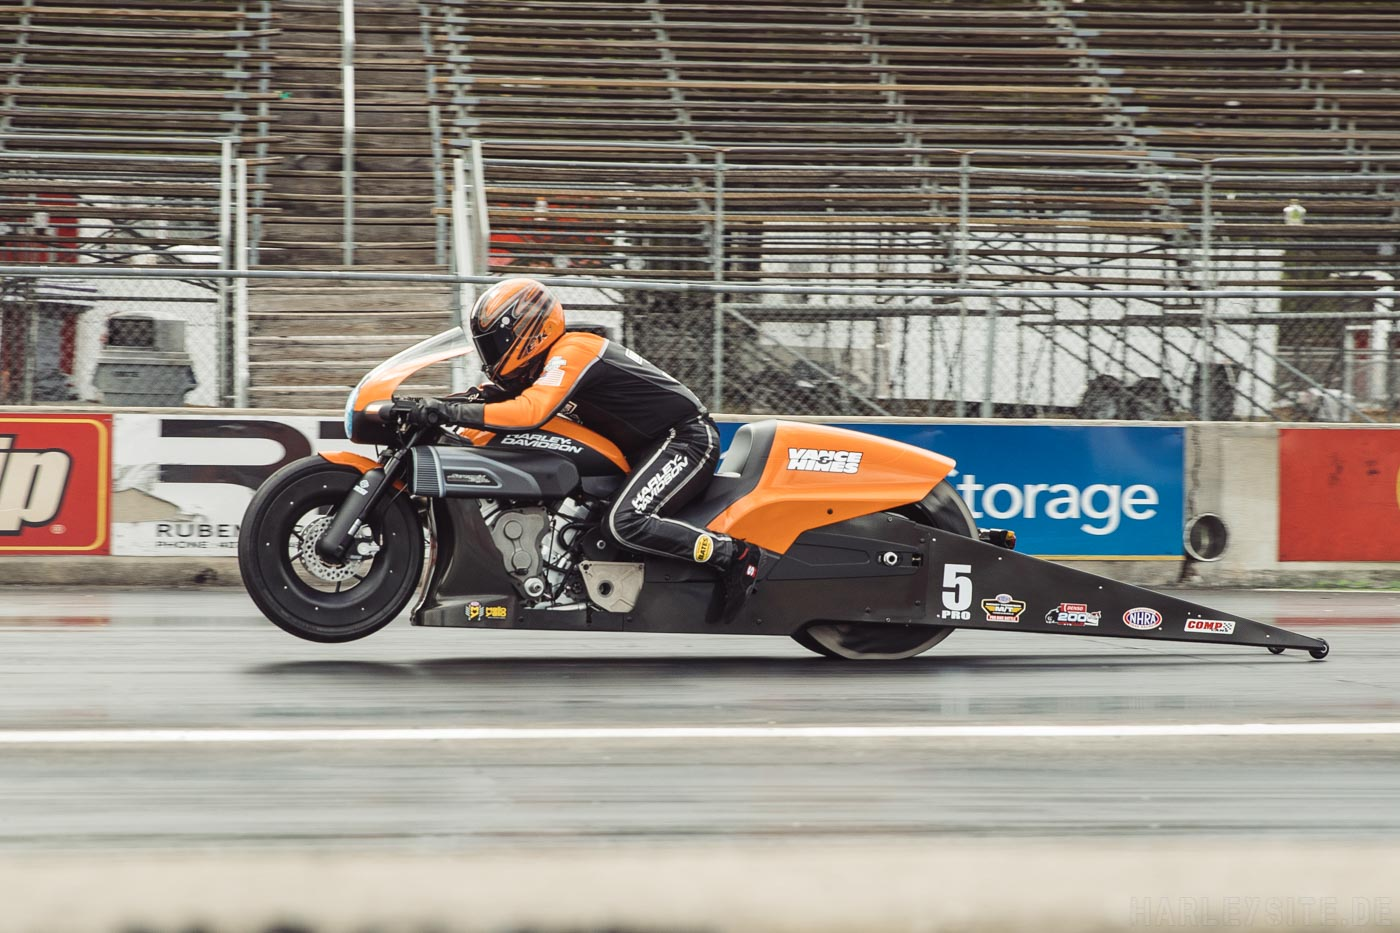 HARLEY-DAVIDSON SCREAMIN-EAGLE / VANCE & HINES-DRAG-TEAM